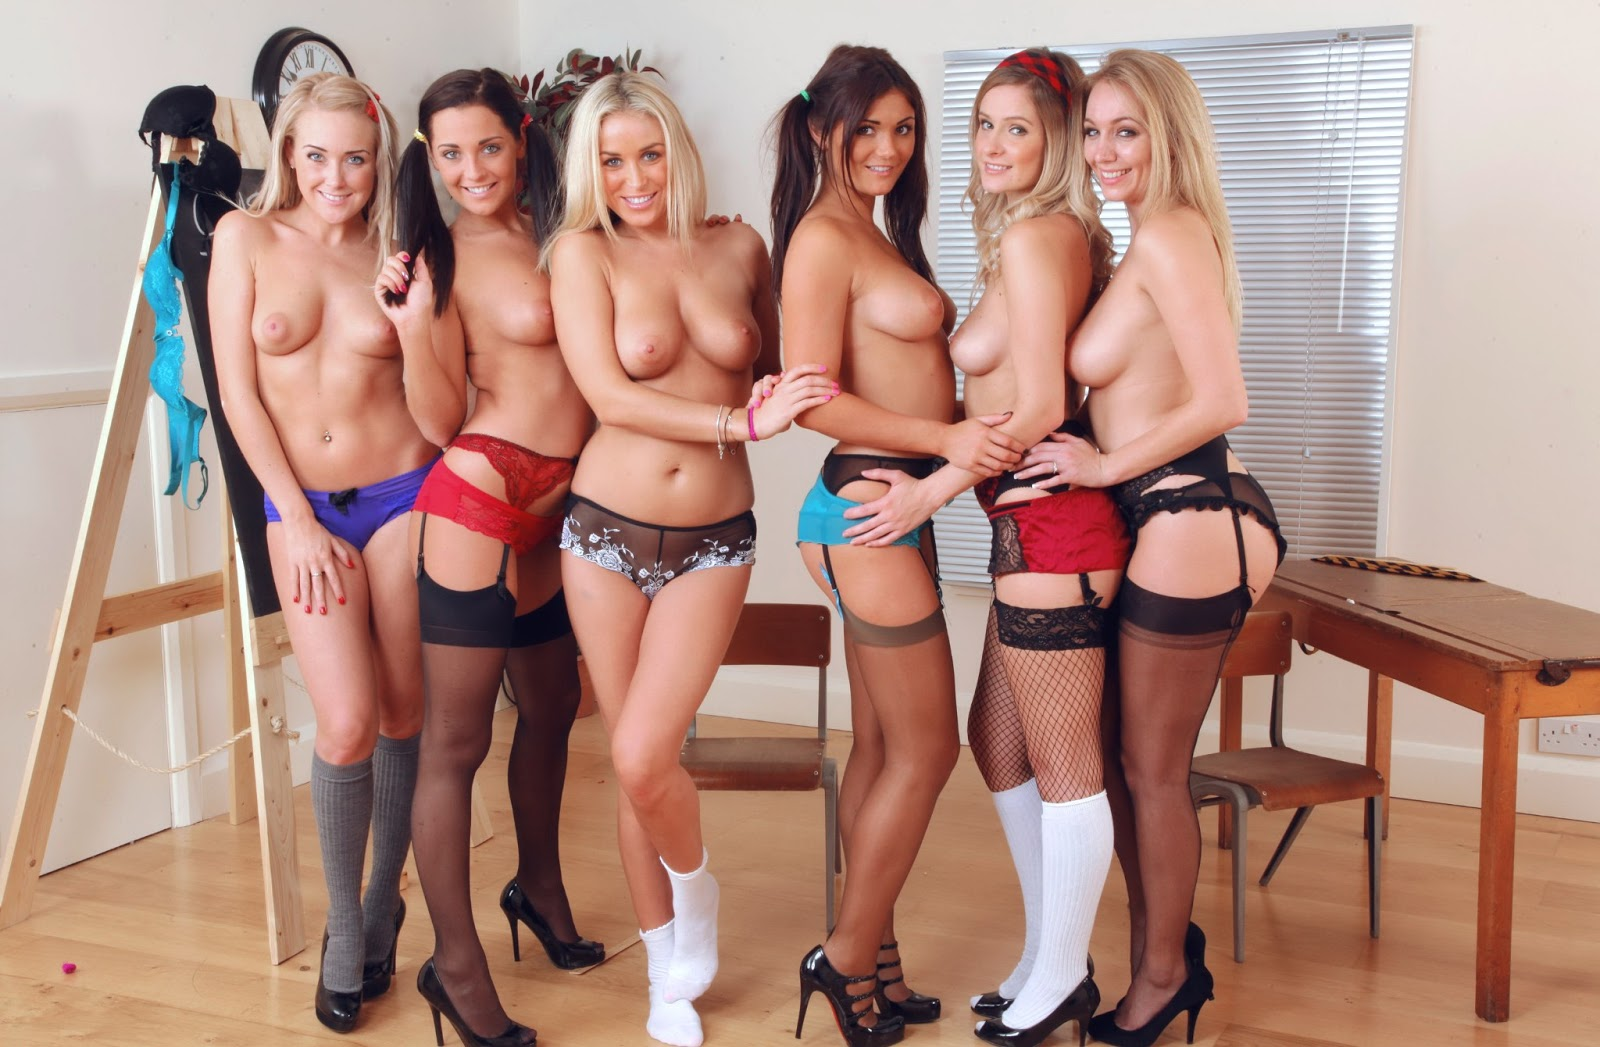 Group of topless girls lingerie